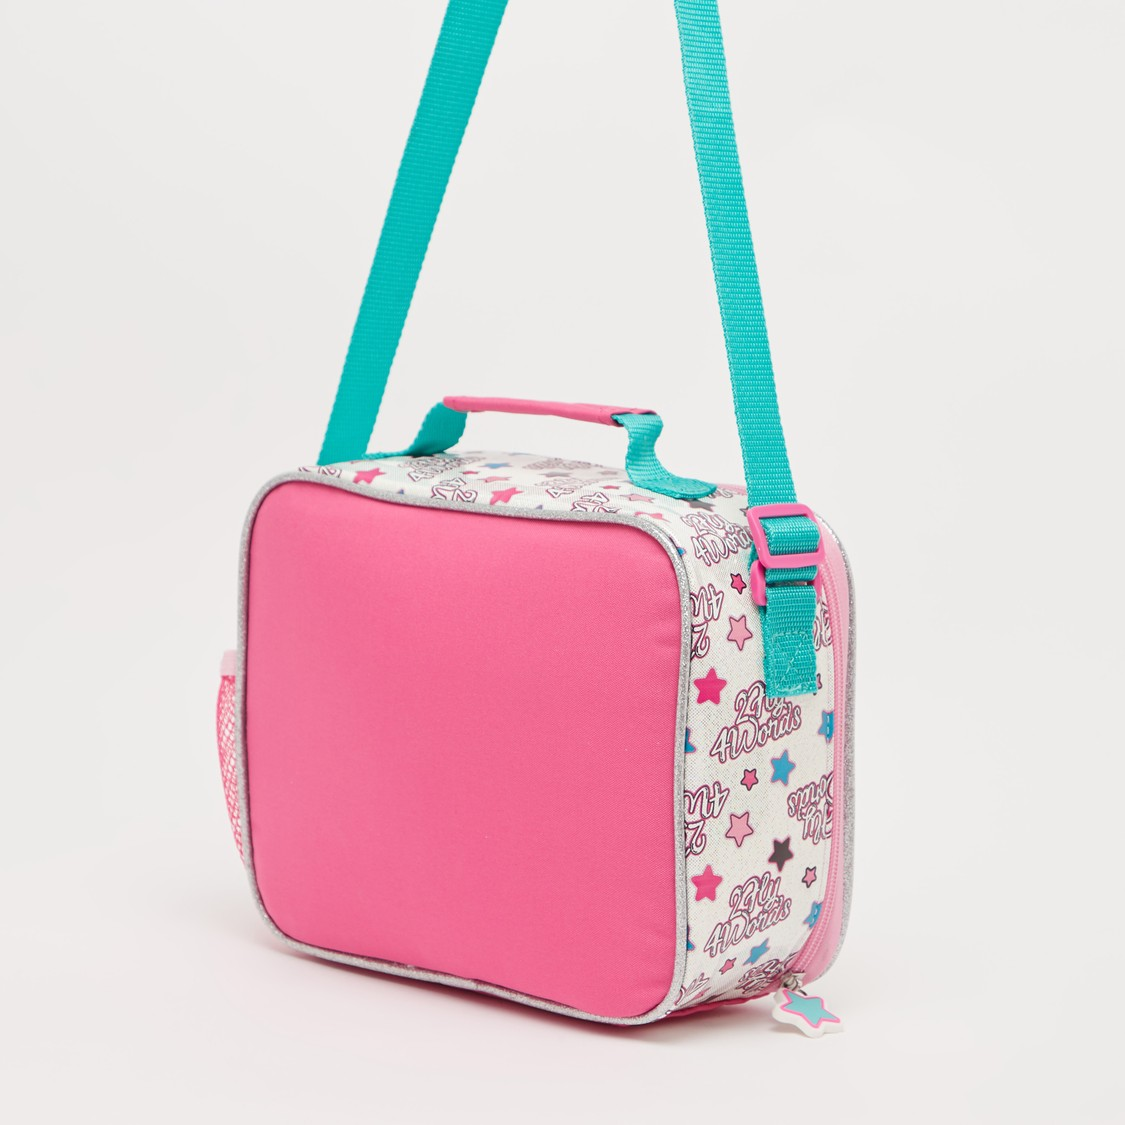 L.O.L. Surprise! Print Lunch Bag with Adjustable Strap and Zip Closure